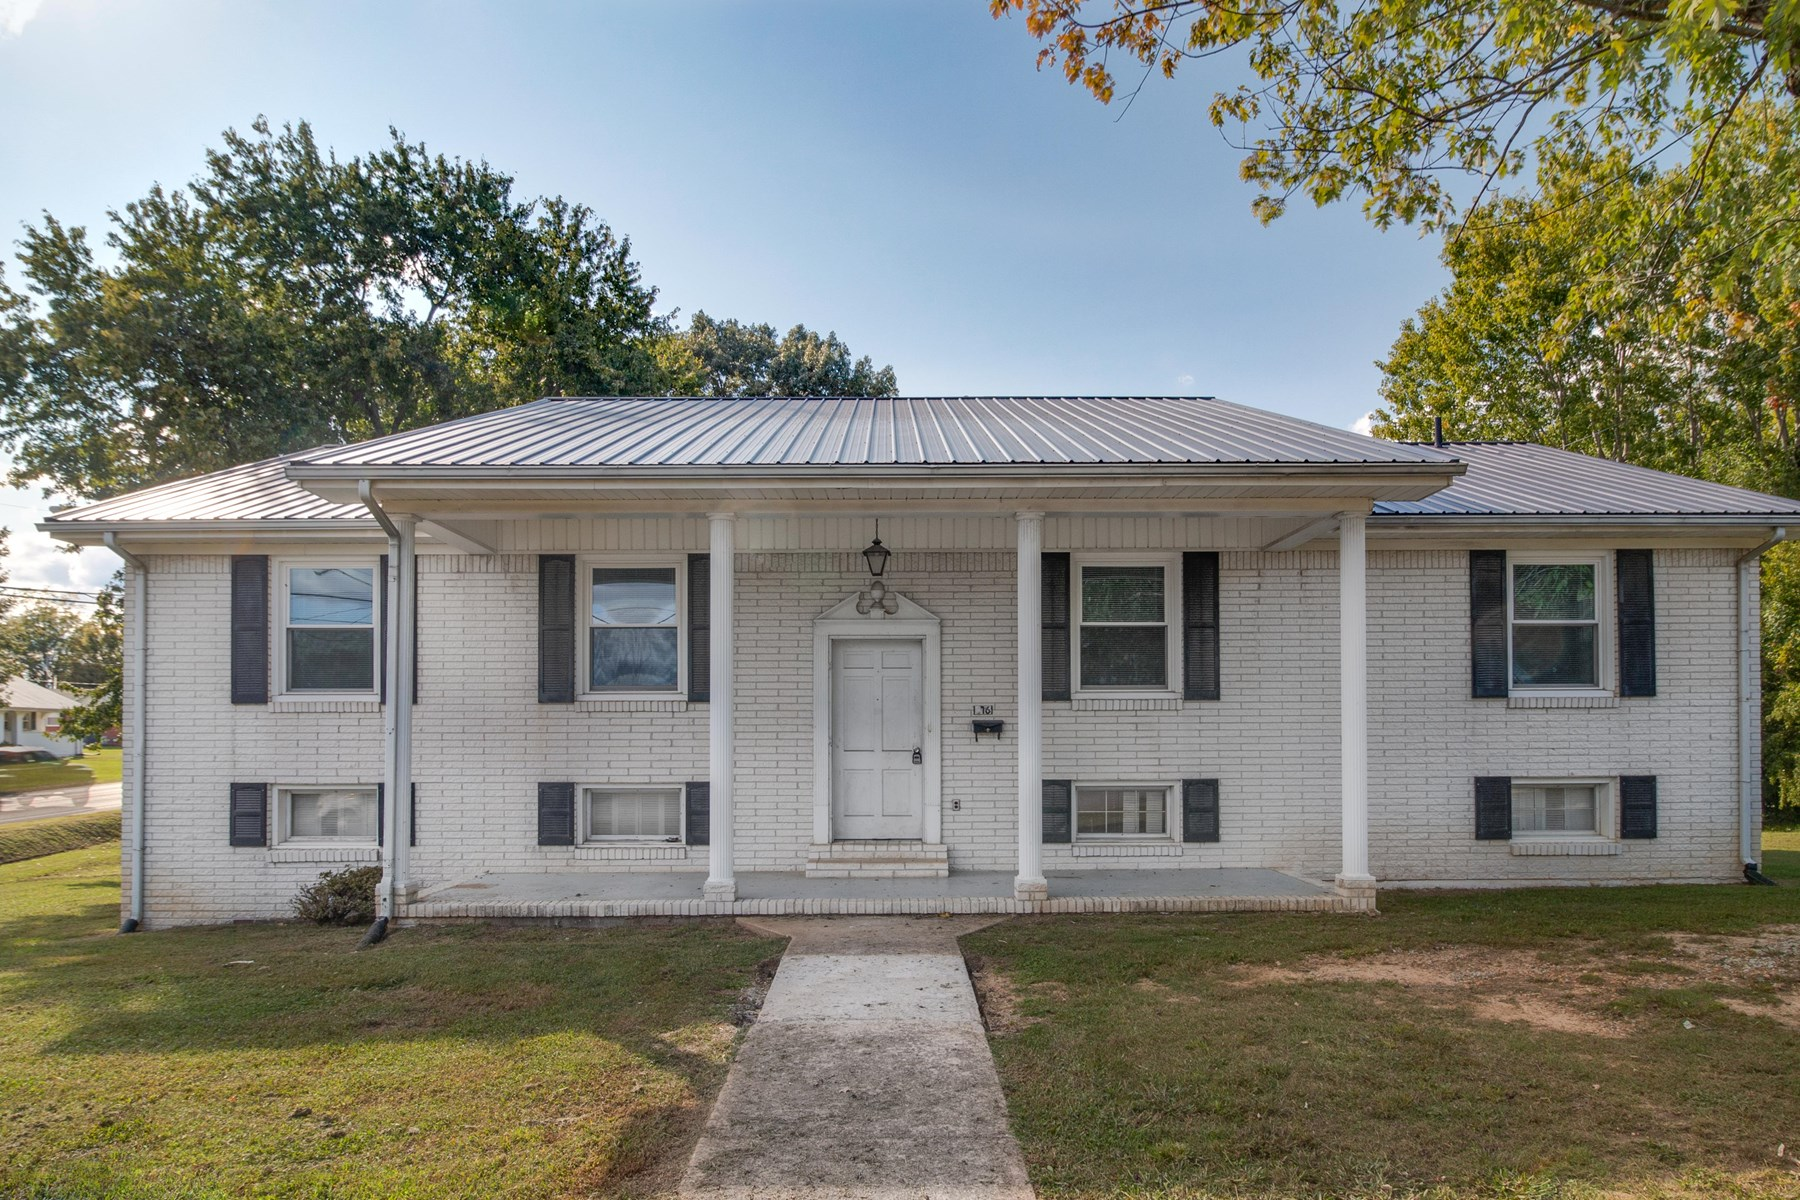 Home in Town for Sale in Hohenwald, Tennessee